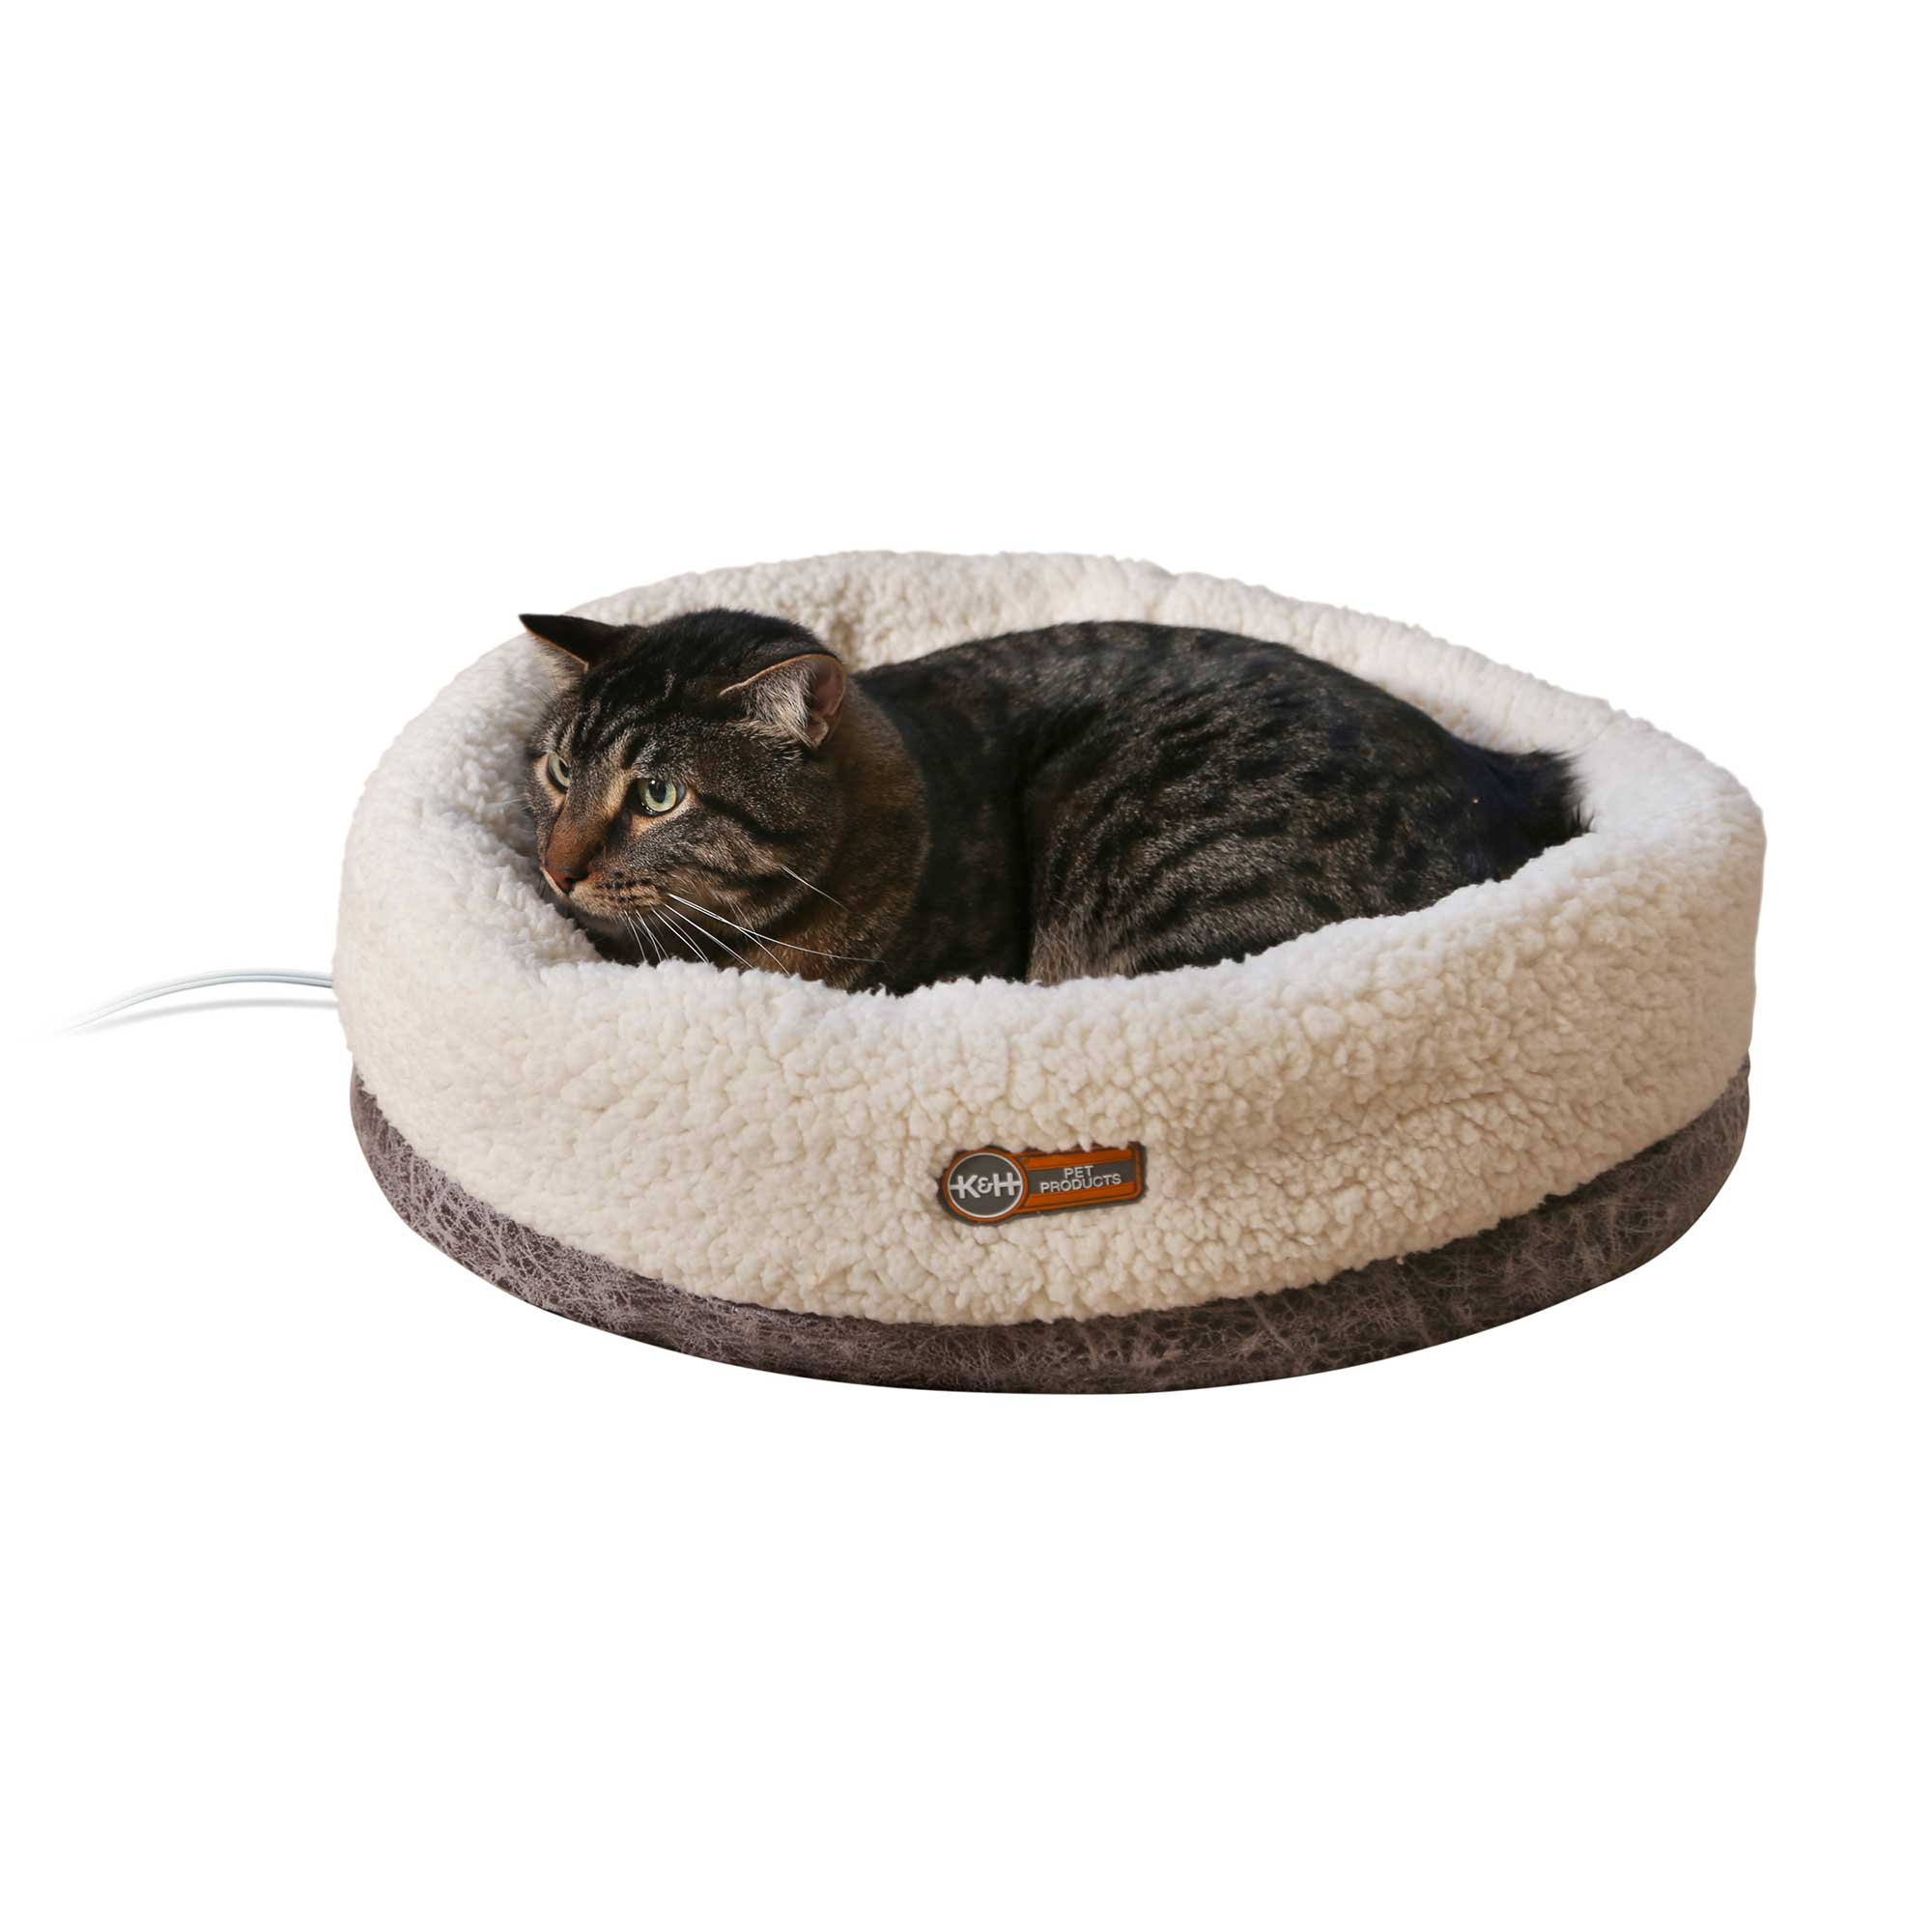 "K&H Pet Products Thermo-Snuggle Cup Pet Bed Bomber Gray 14"" x 18"" x 7"""